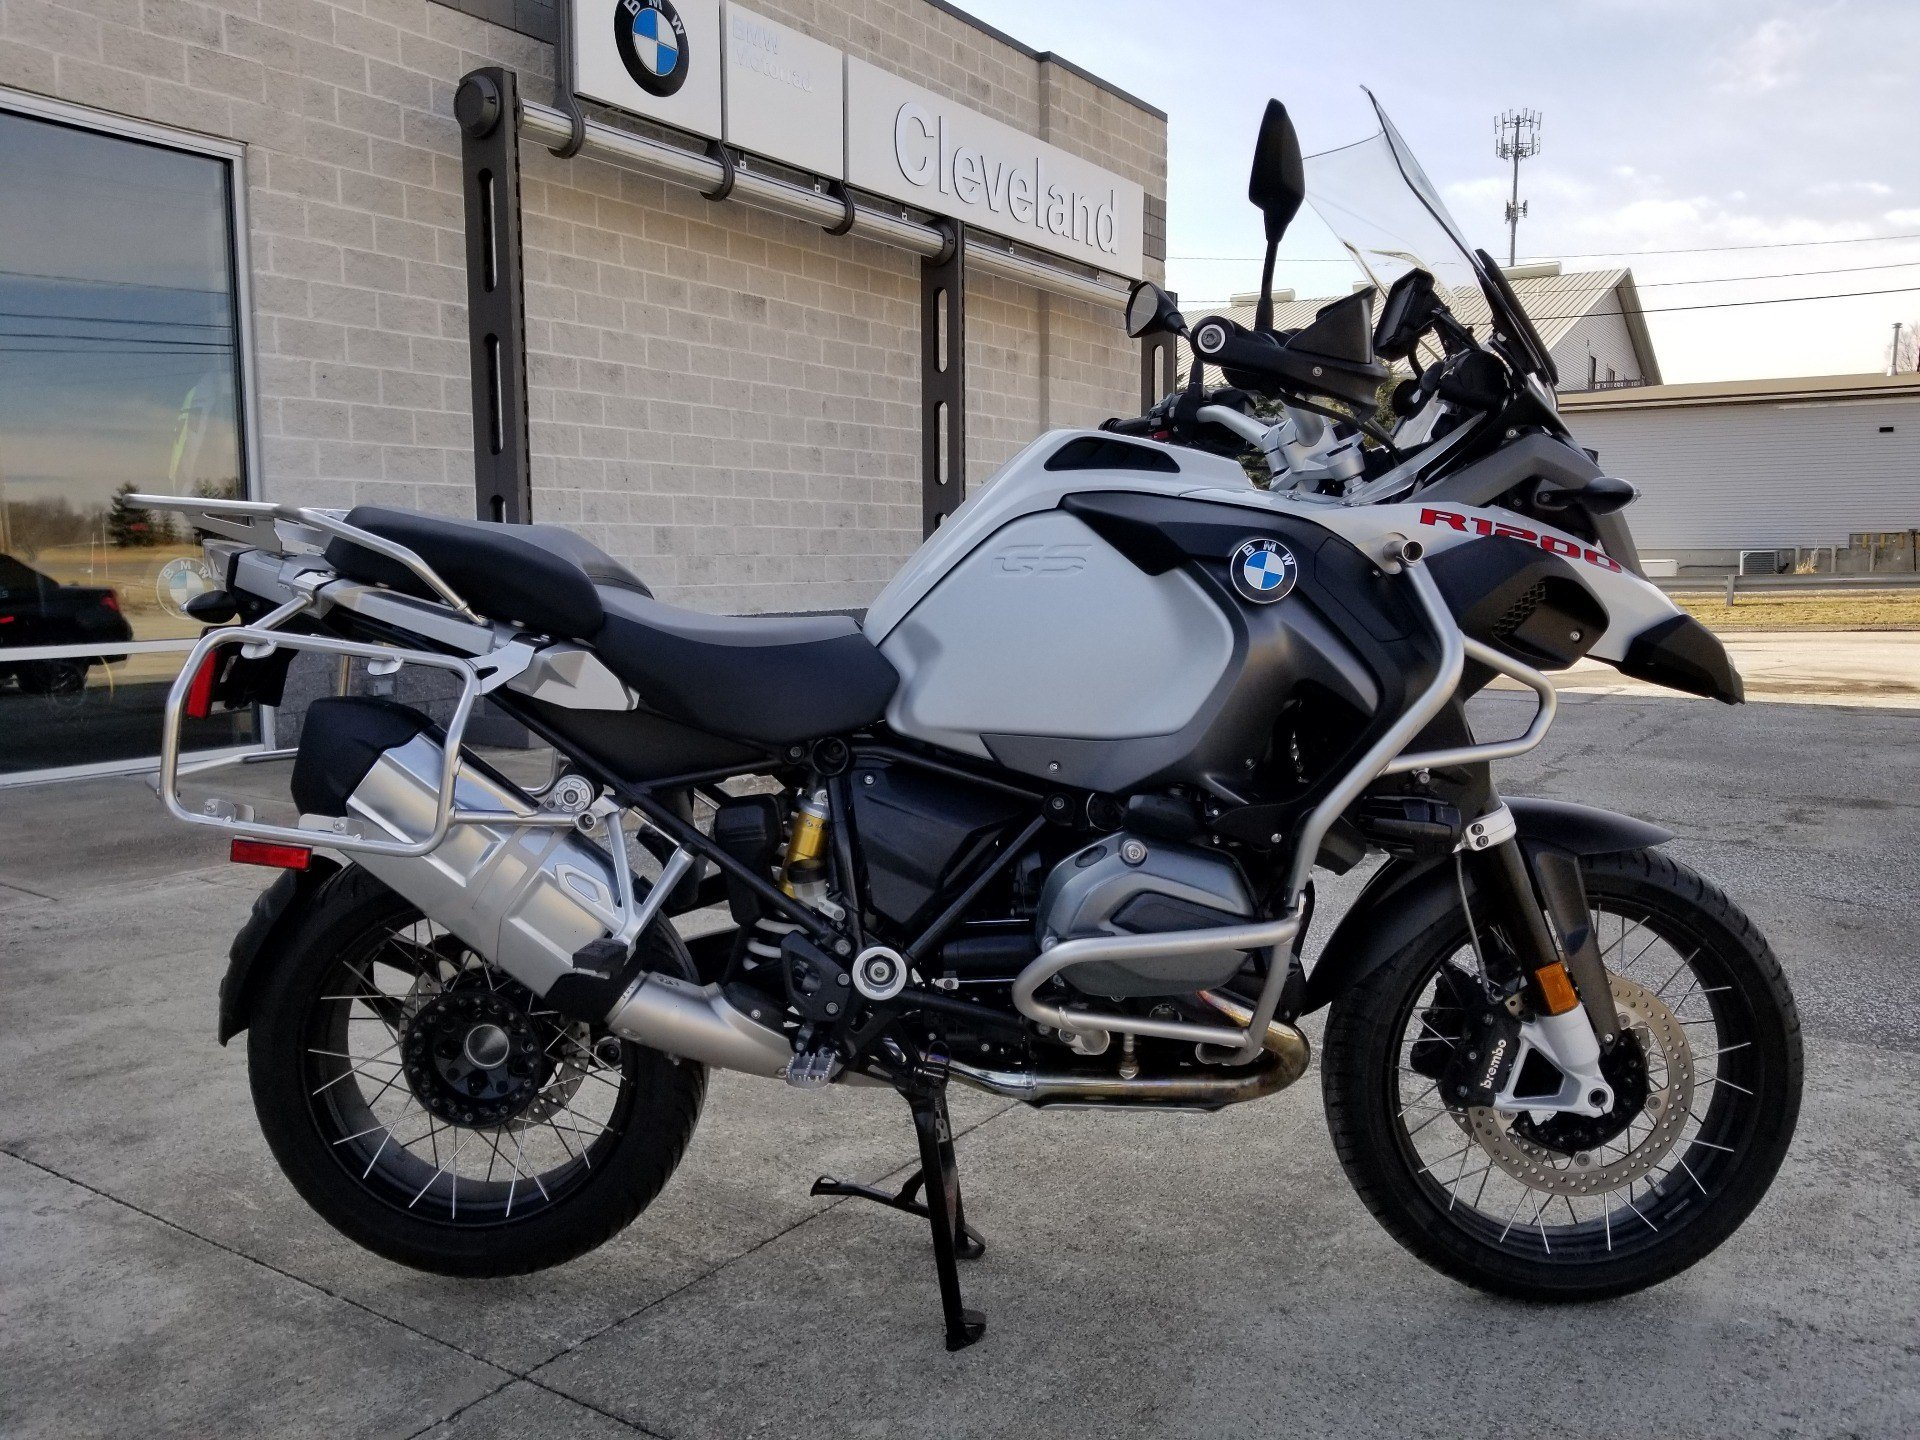 2016 BMW R 1200 GS Adventure in Aurora, Ohio - Photo 1